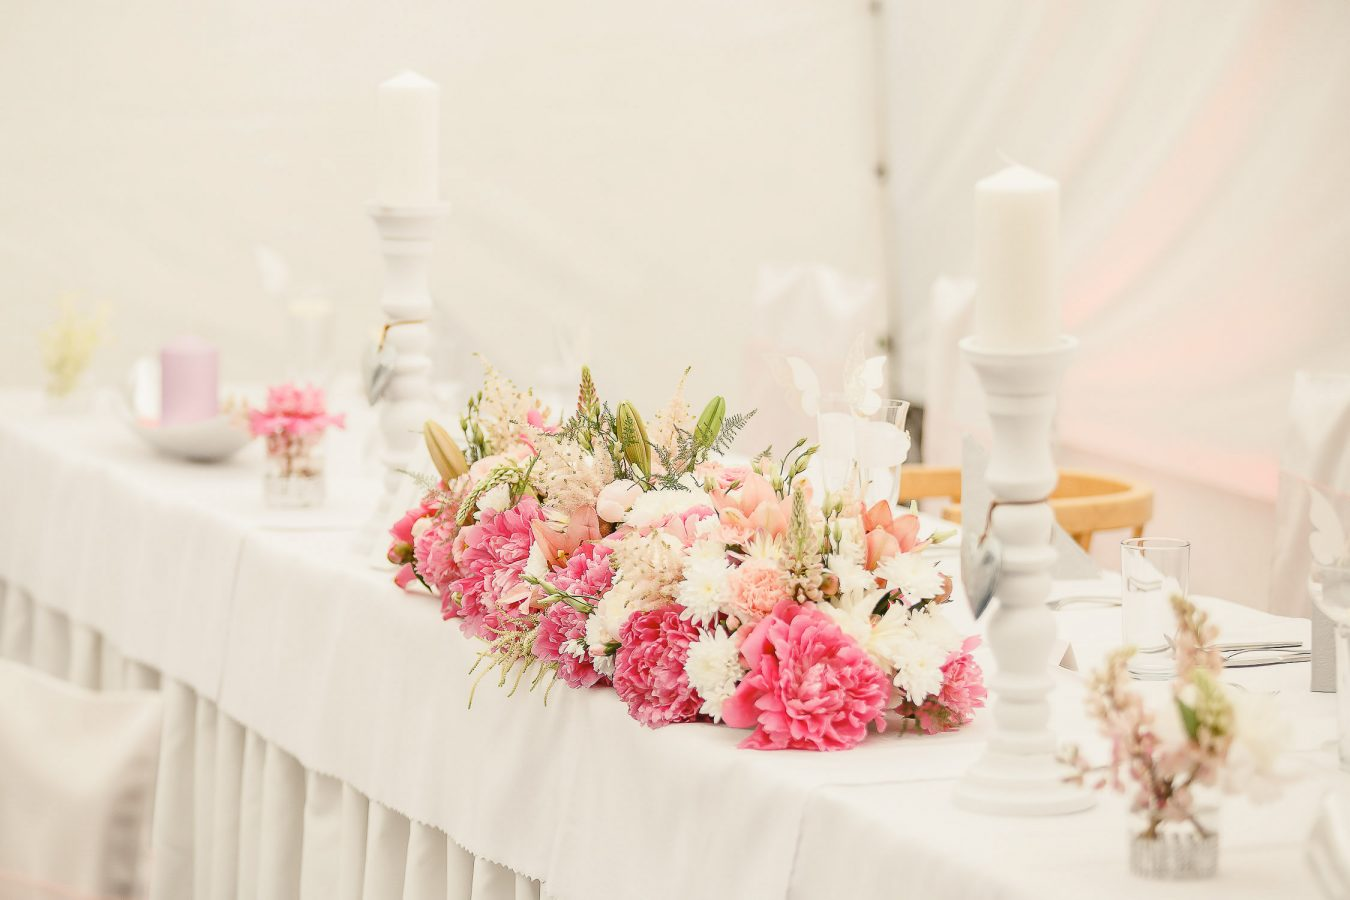 Wedding reception details with flowers